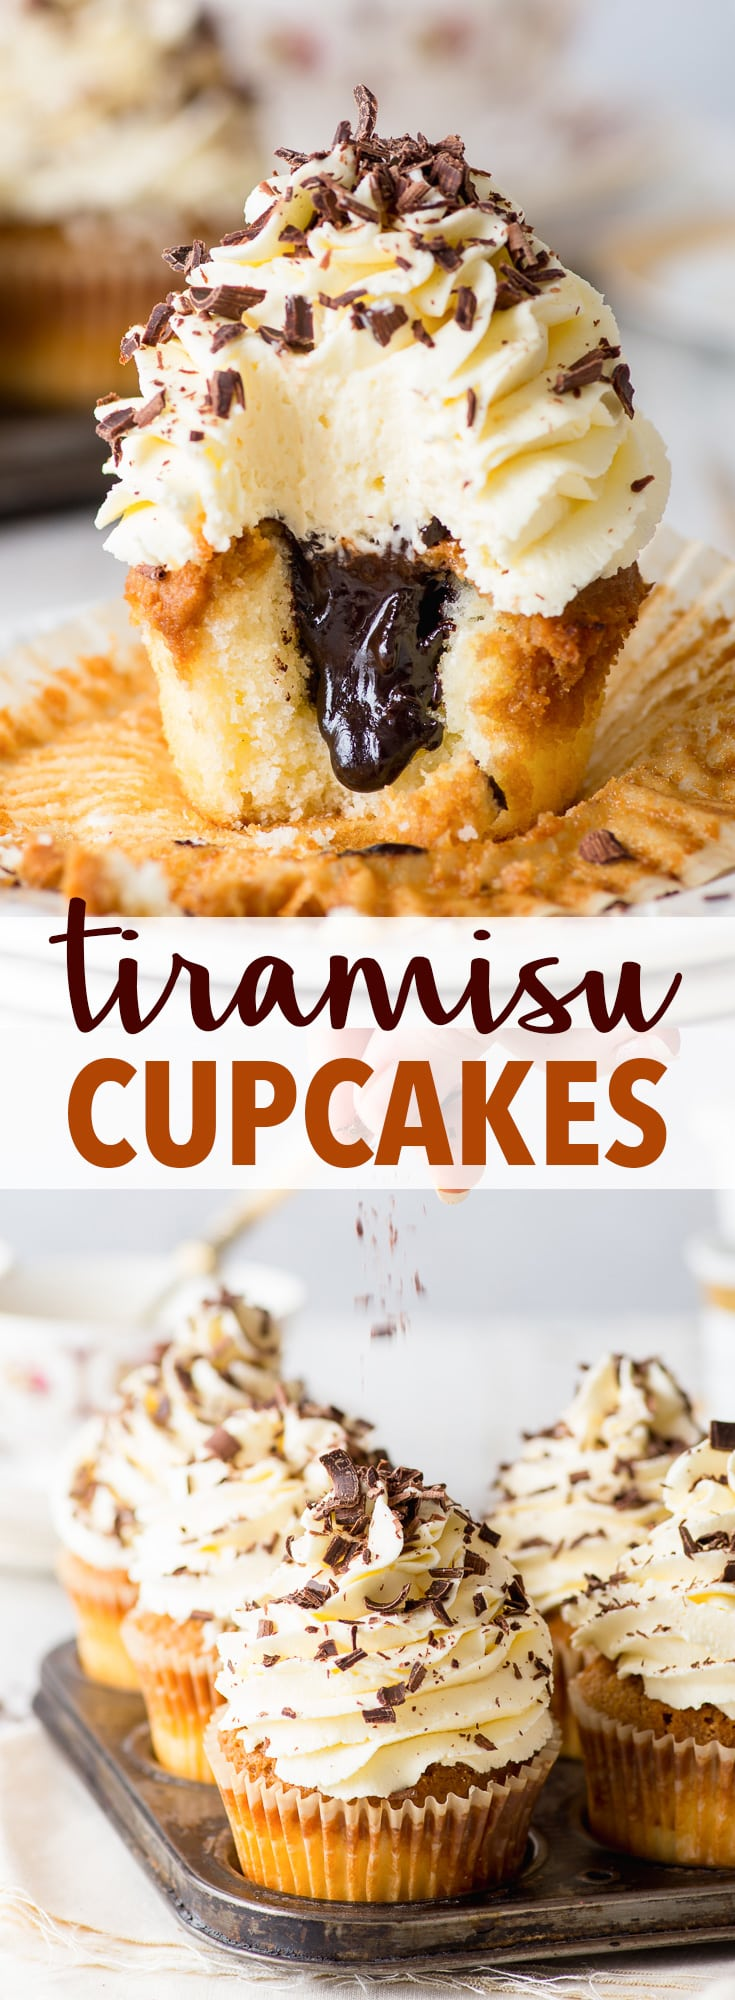 Tiramisu Cupcakes (Gluten Free) - These tiramisu cupcakes are a wonderful twist on that beloved classic Italian dessert. With fluffy vanilla cupcakes soaked in coffee, a rich mascarpone cheese frosting and a chocolate fudge centre – these cupcakes mean business. Gluten free cupcakes recipe. Coffee cupcakes. Mascarpone buttercream frosting. Gluten free tiramisu. Easy cupcake recipe. Coffee desserts. Gluten free desserts. Chocolate fudge sauce. #tiramisu #cupcakes